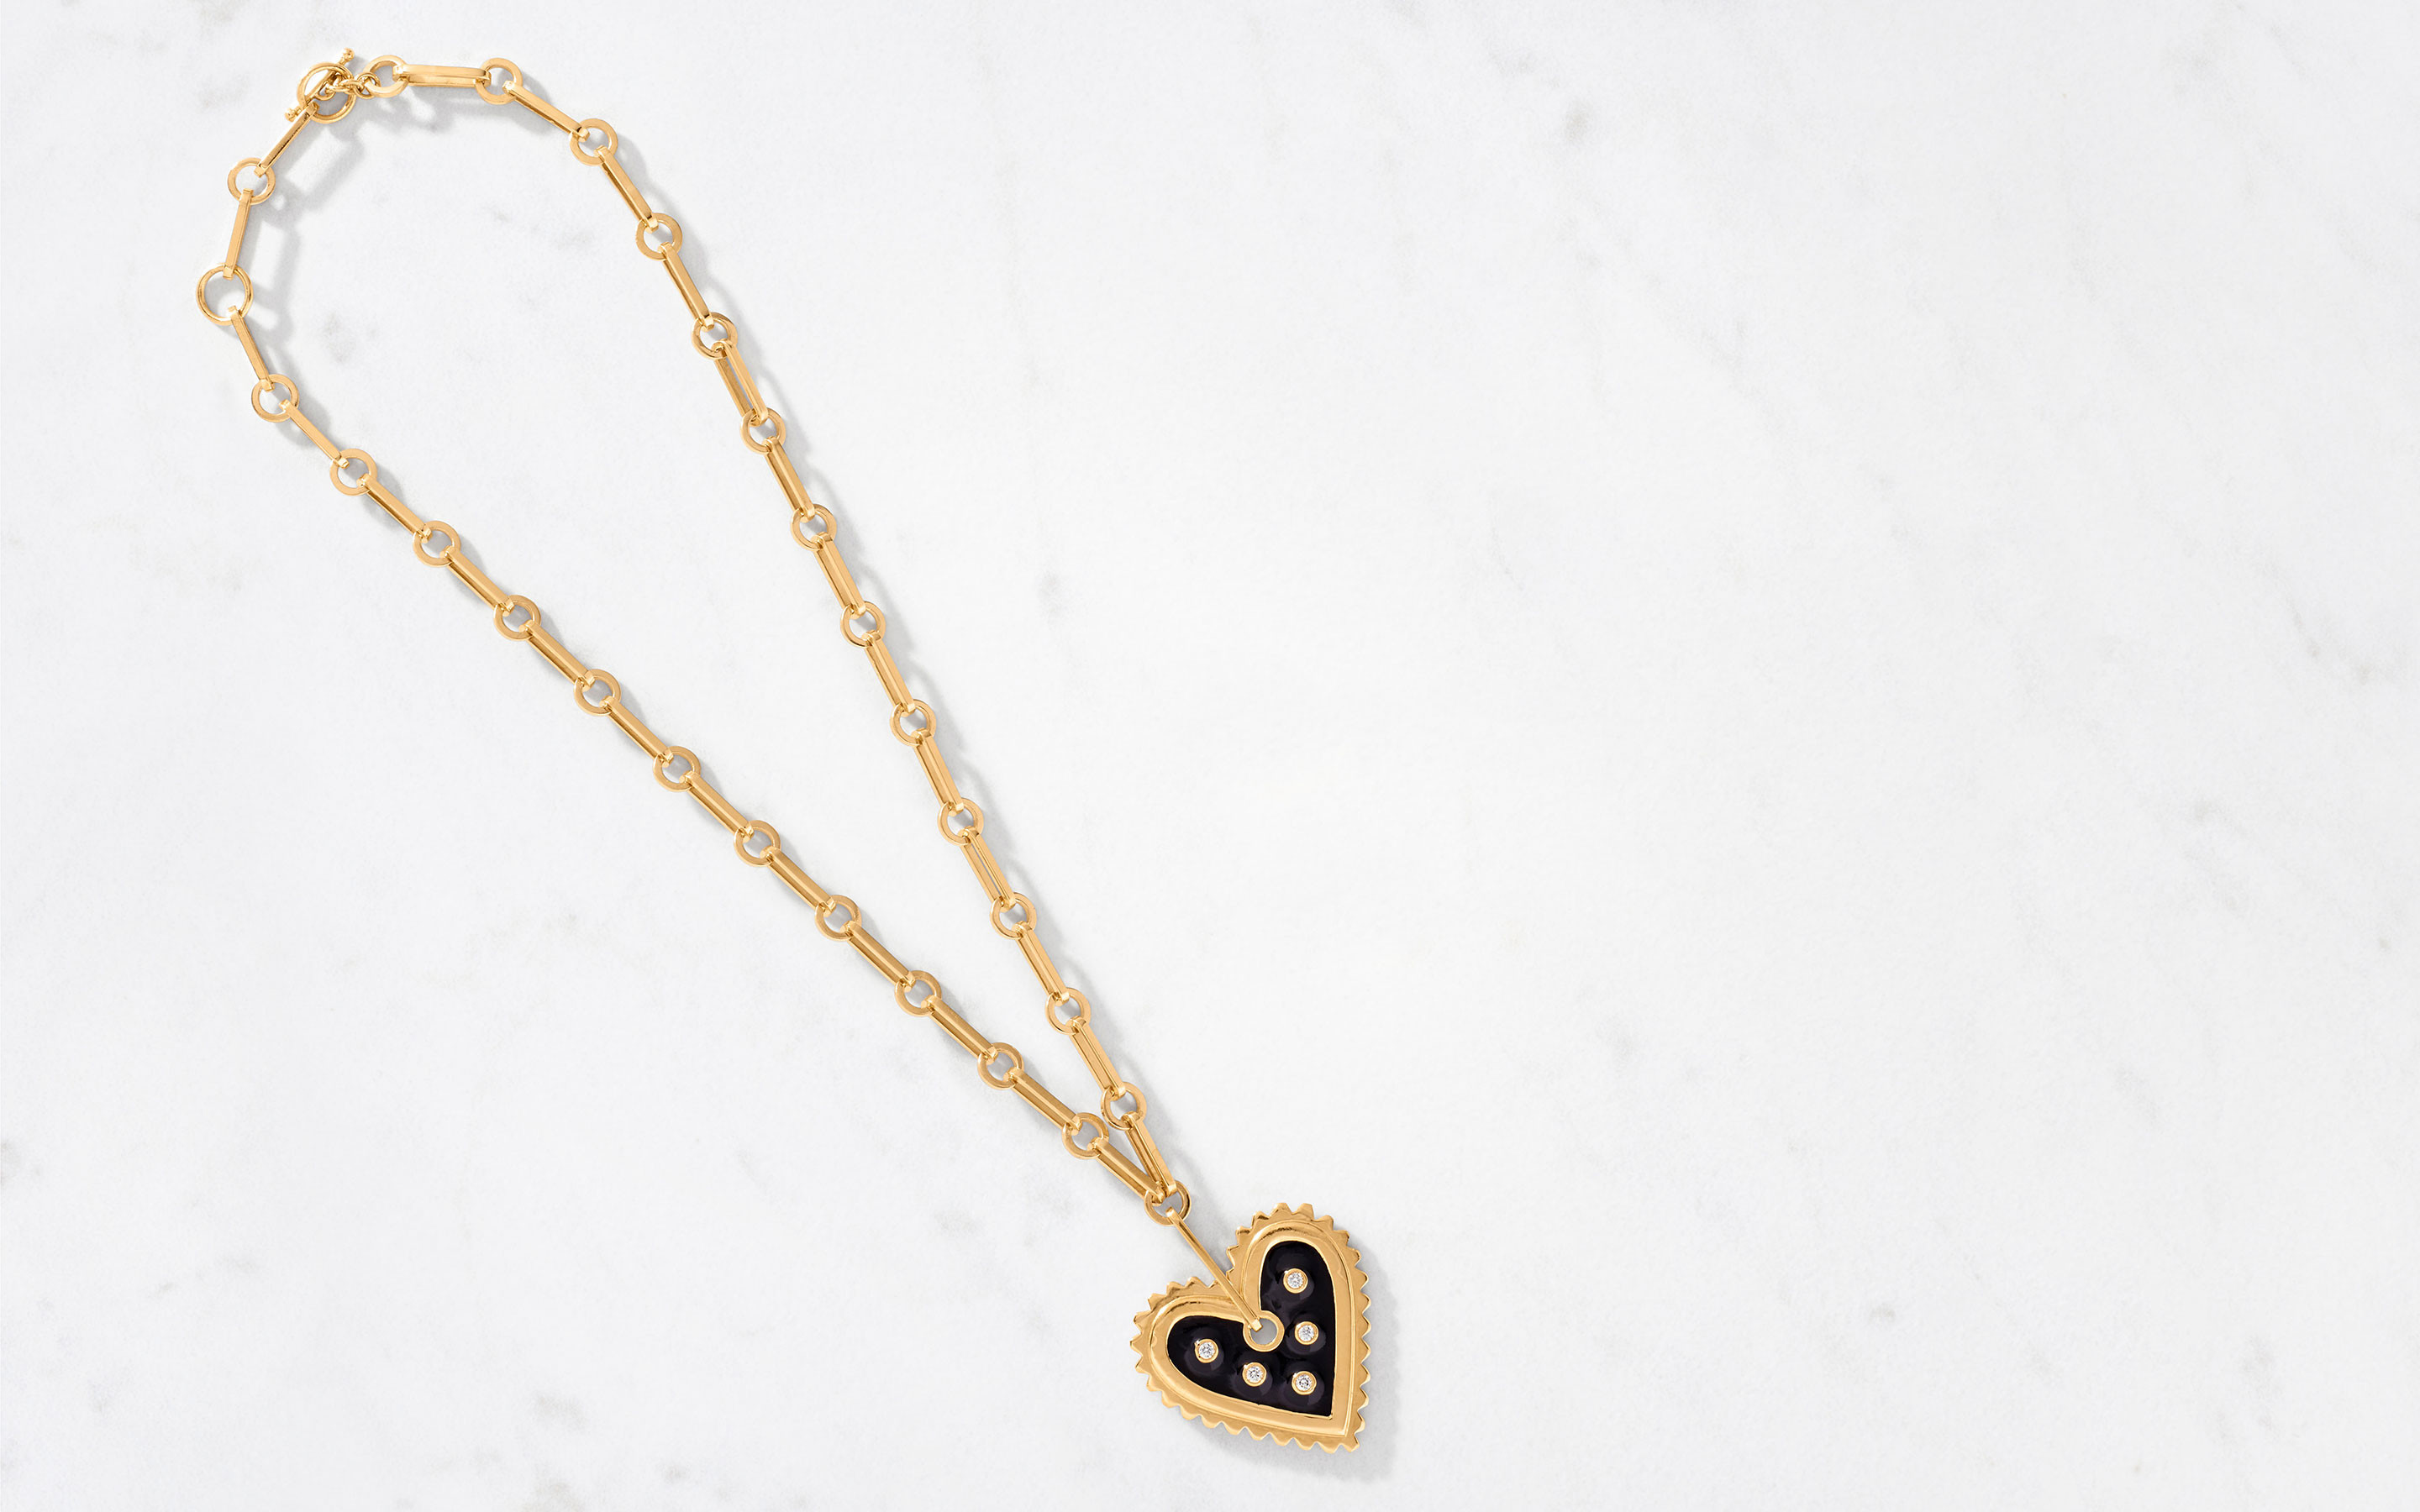 bold 22 karat gold necklace with heart pendant